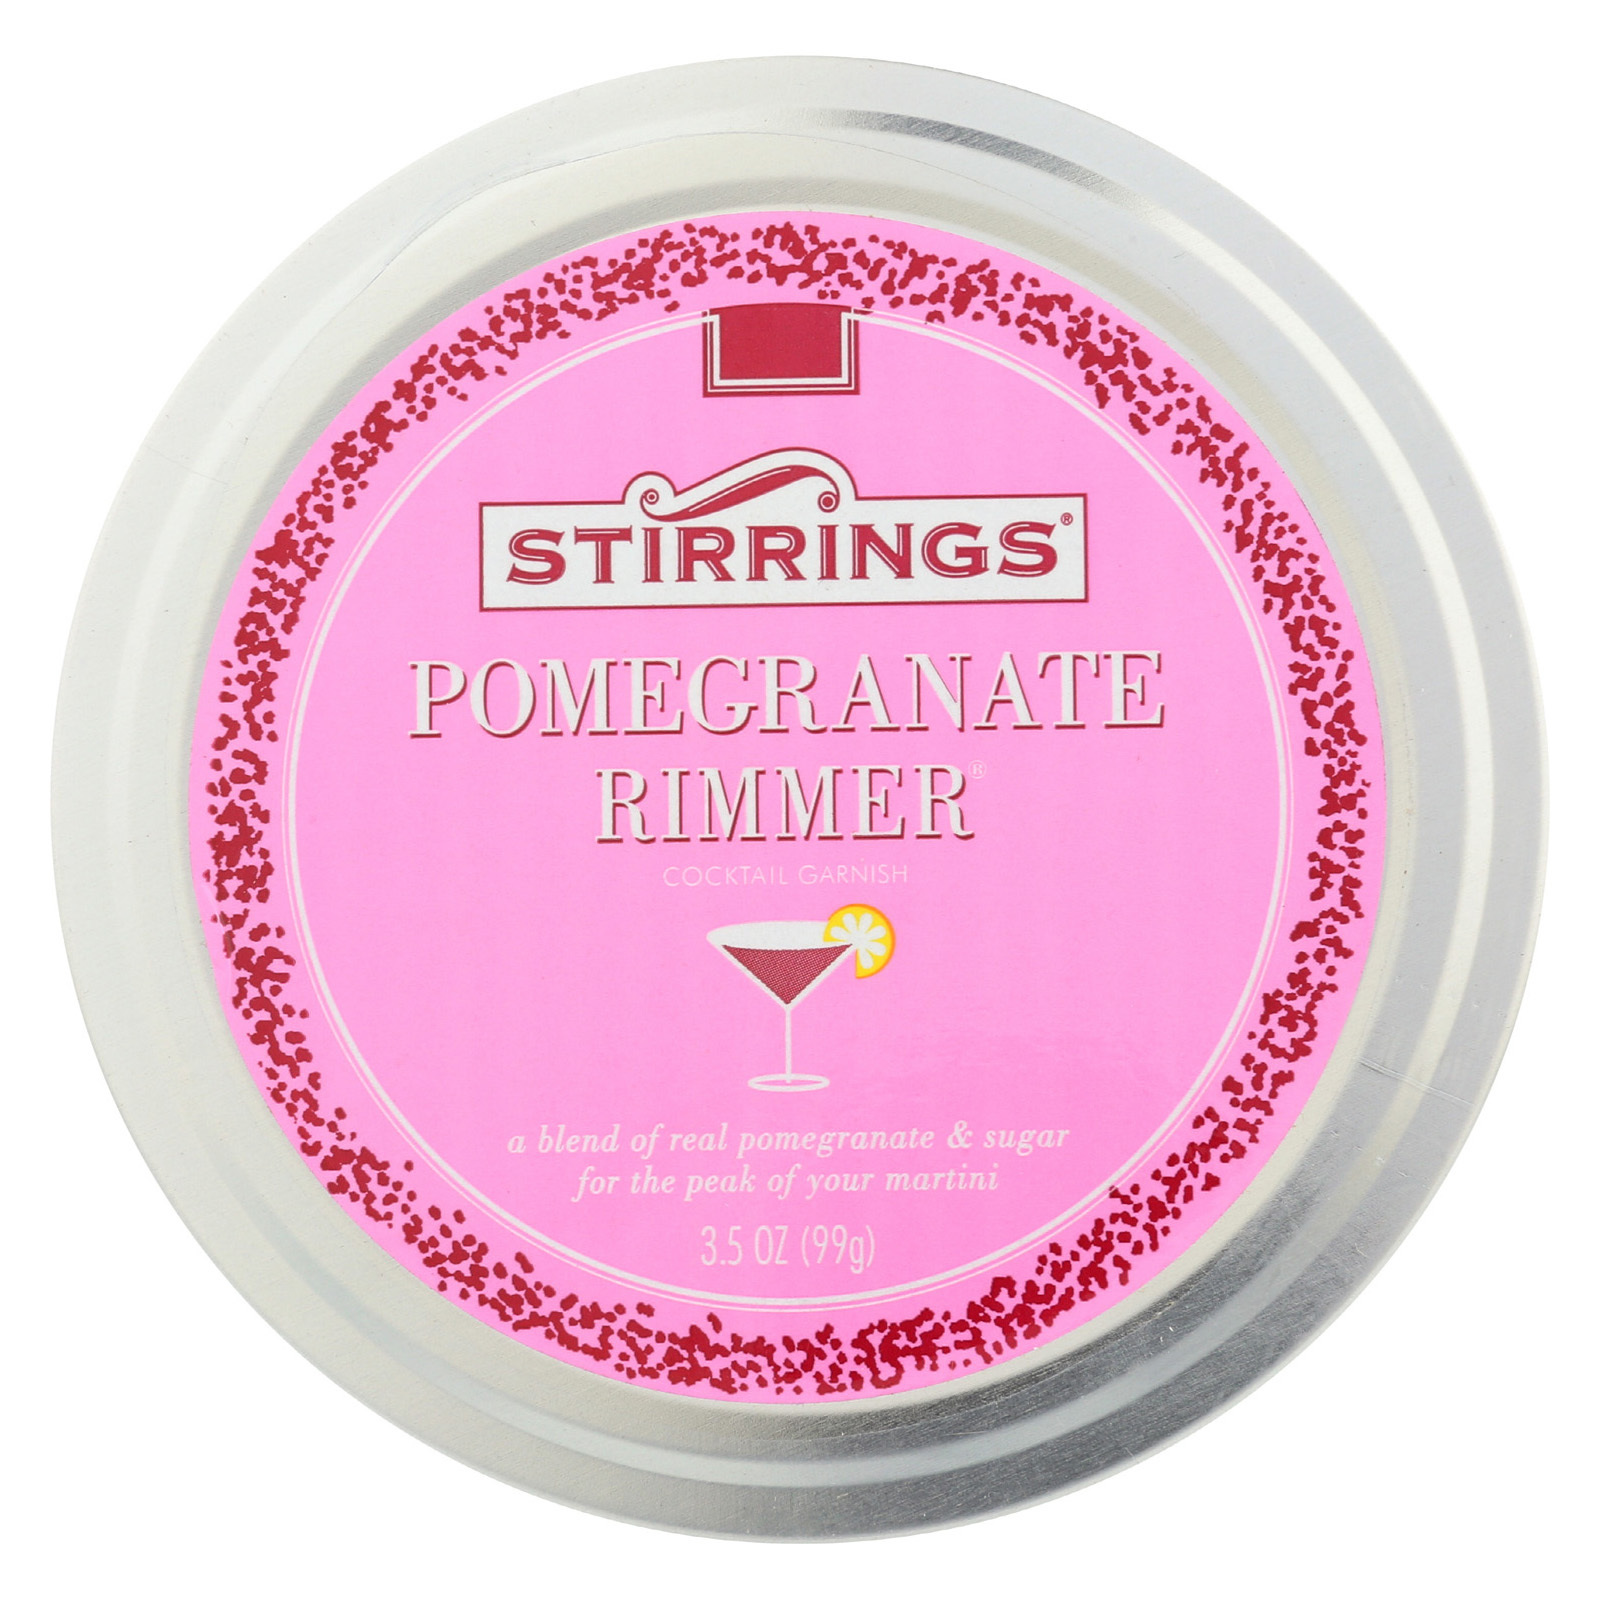 Stirrings Pomegranate Rimmer - Case of 6 - 3.5 fl oz